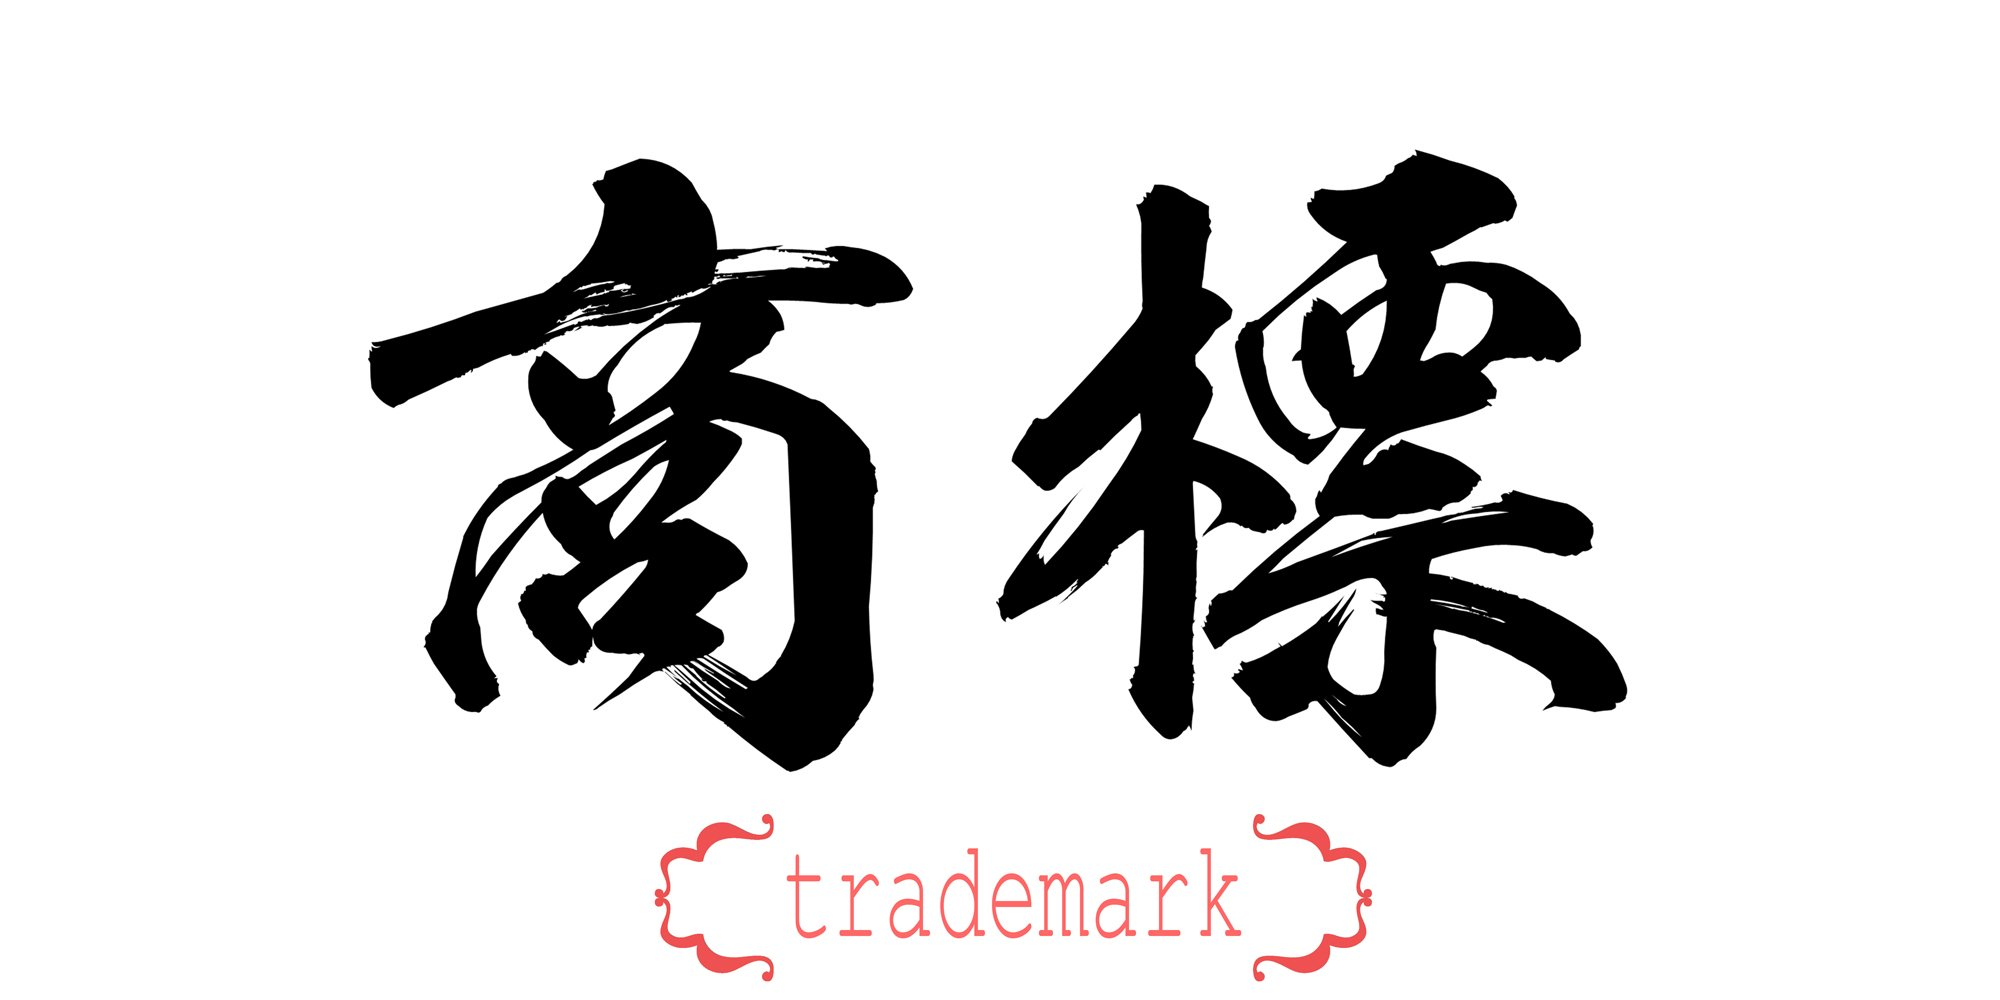 Revised Trademark Law Targets Bad Faith Registration and